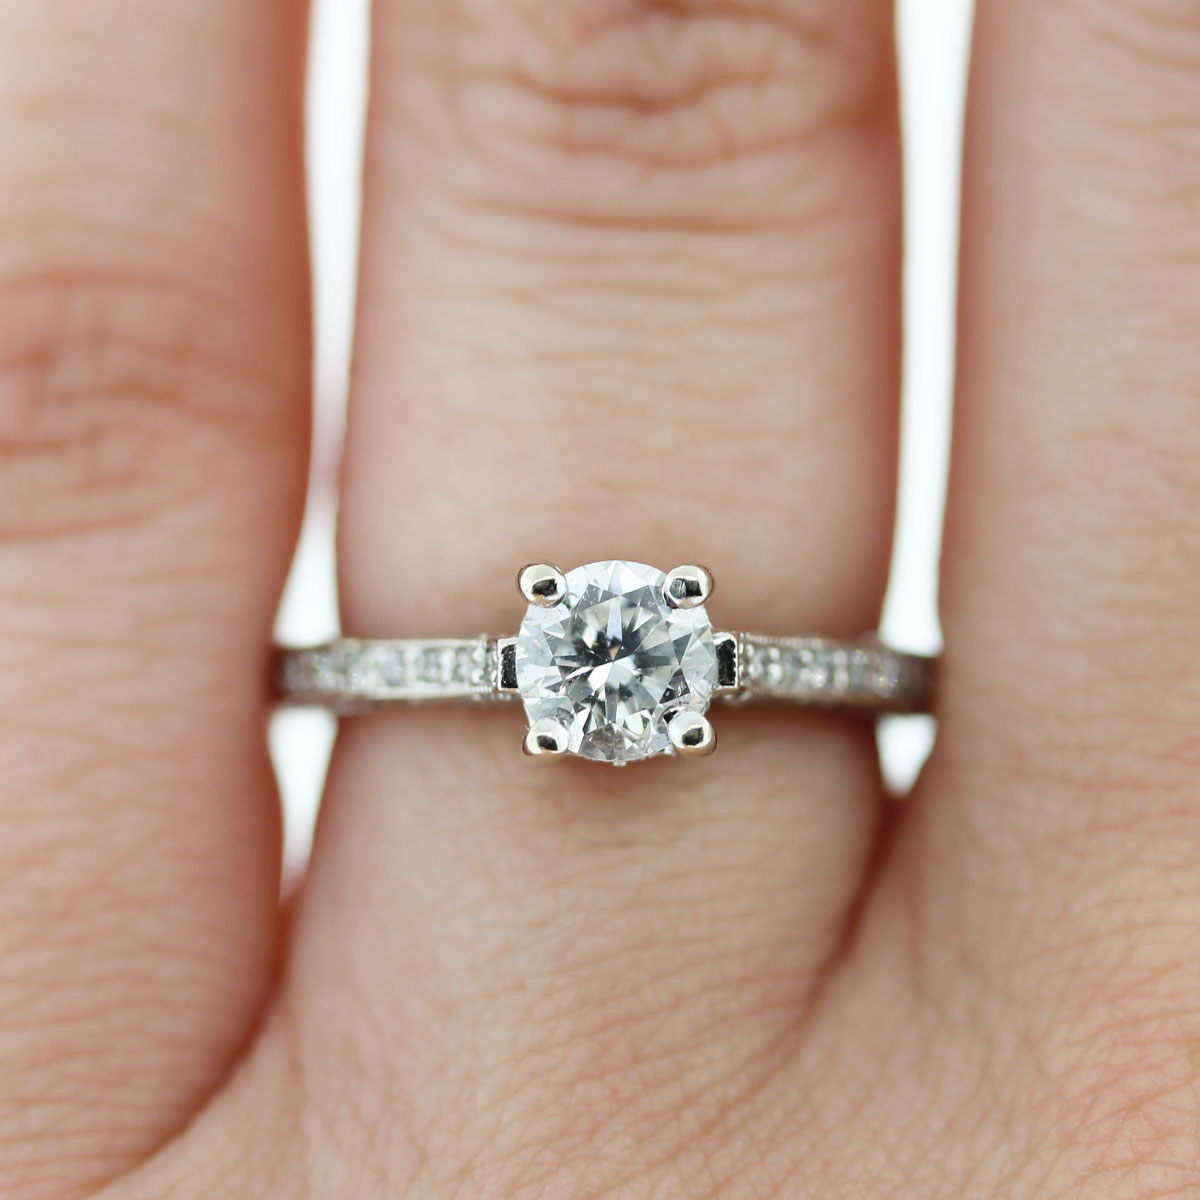 Check out this 14k White Gold EGL Cert. Round Brilliant Diamond Engagement Ring